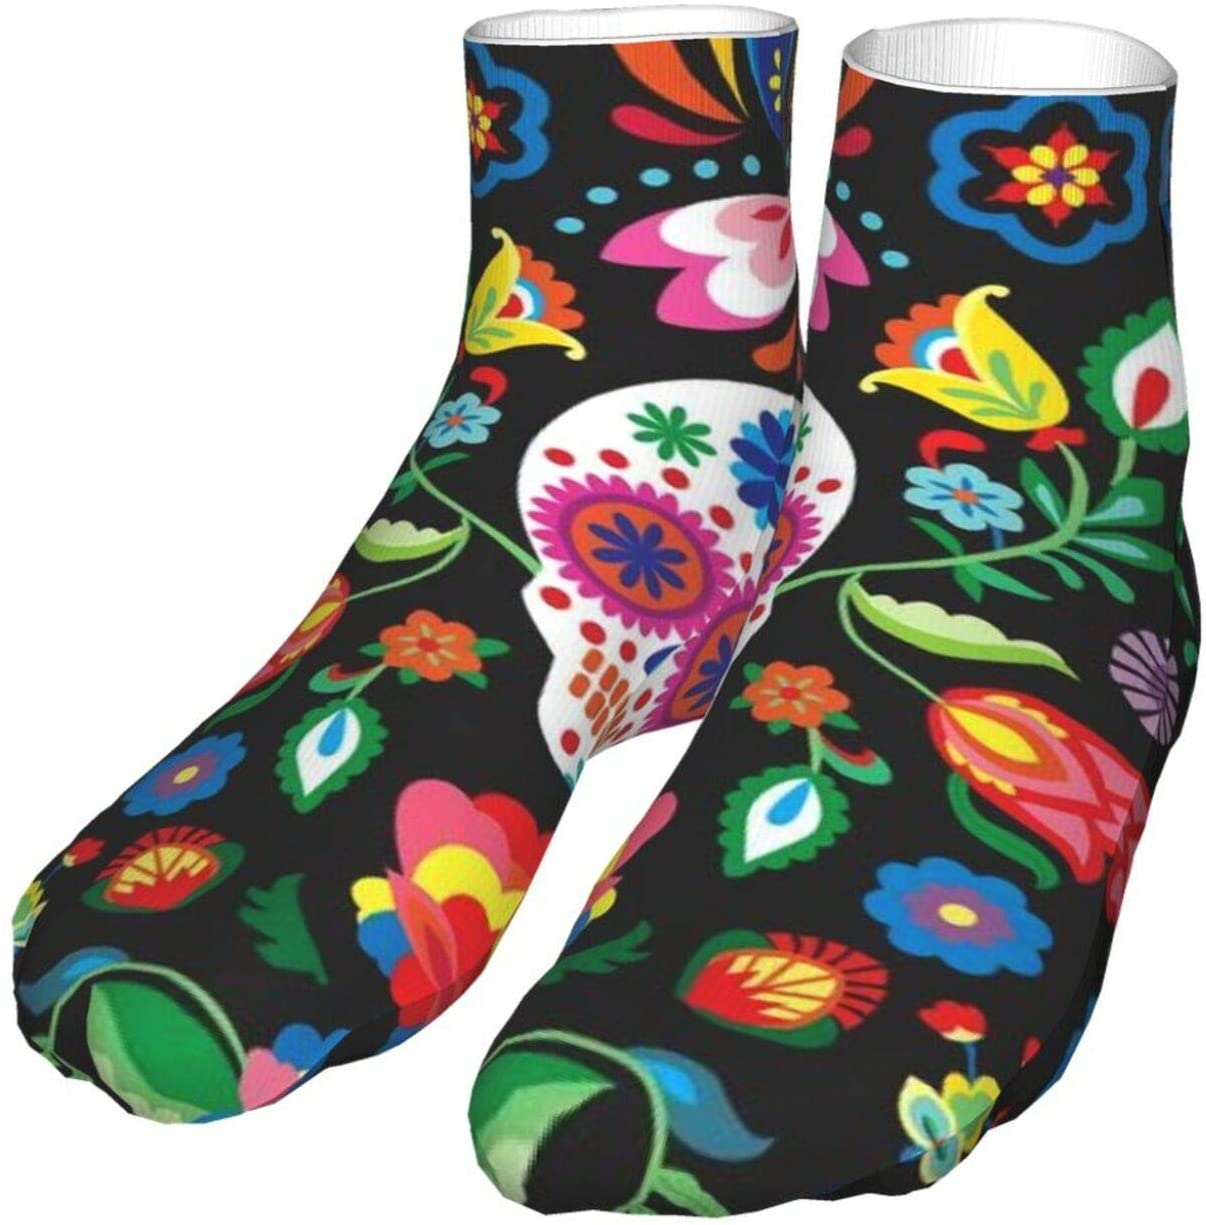 antcreptson Mexican Skull Compression Socks Unisex Printed Socks Crazy Patterned Fun Long Cotton Socks Over The Calf Tube